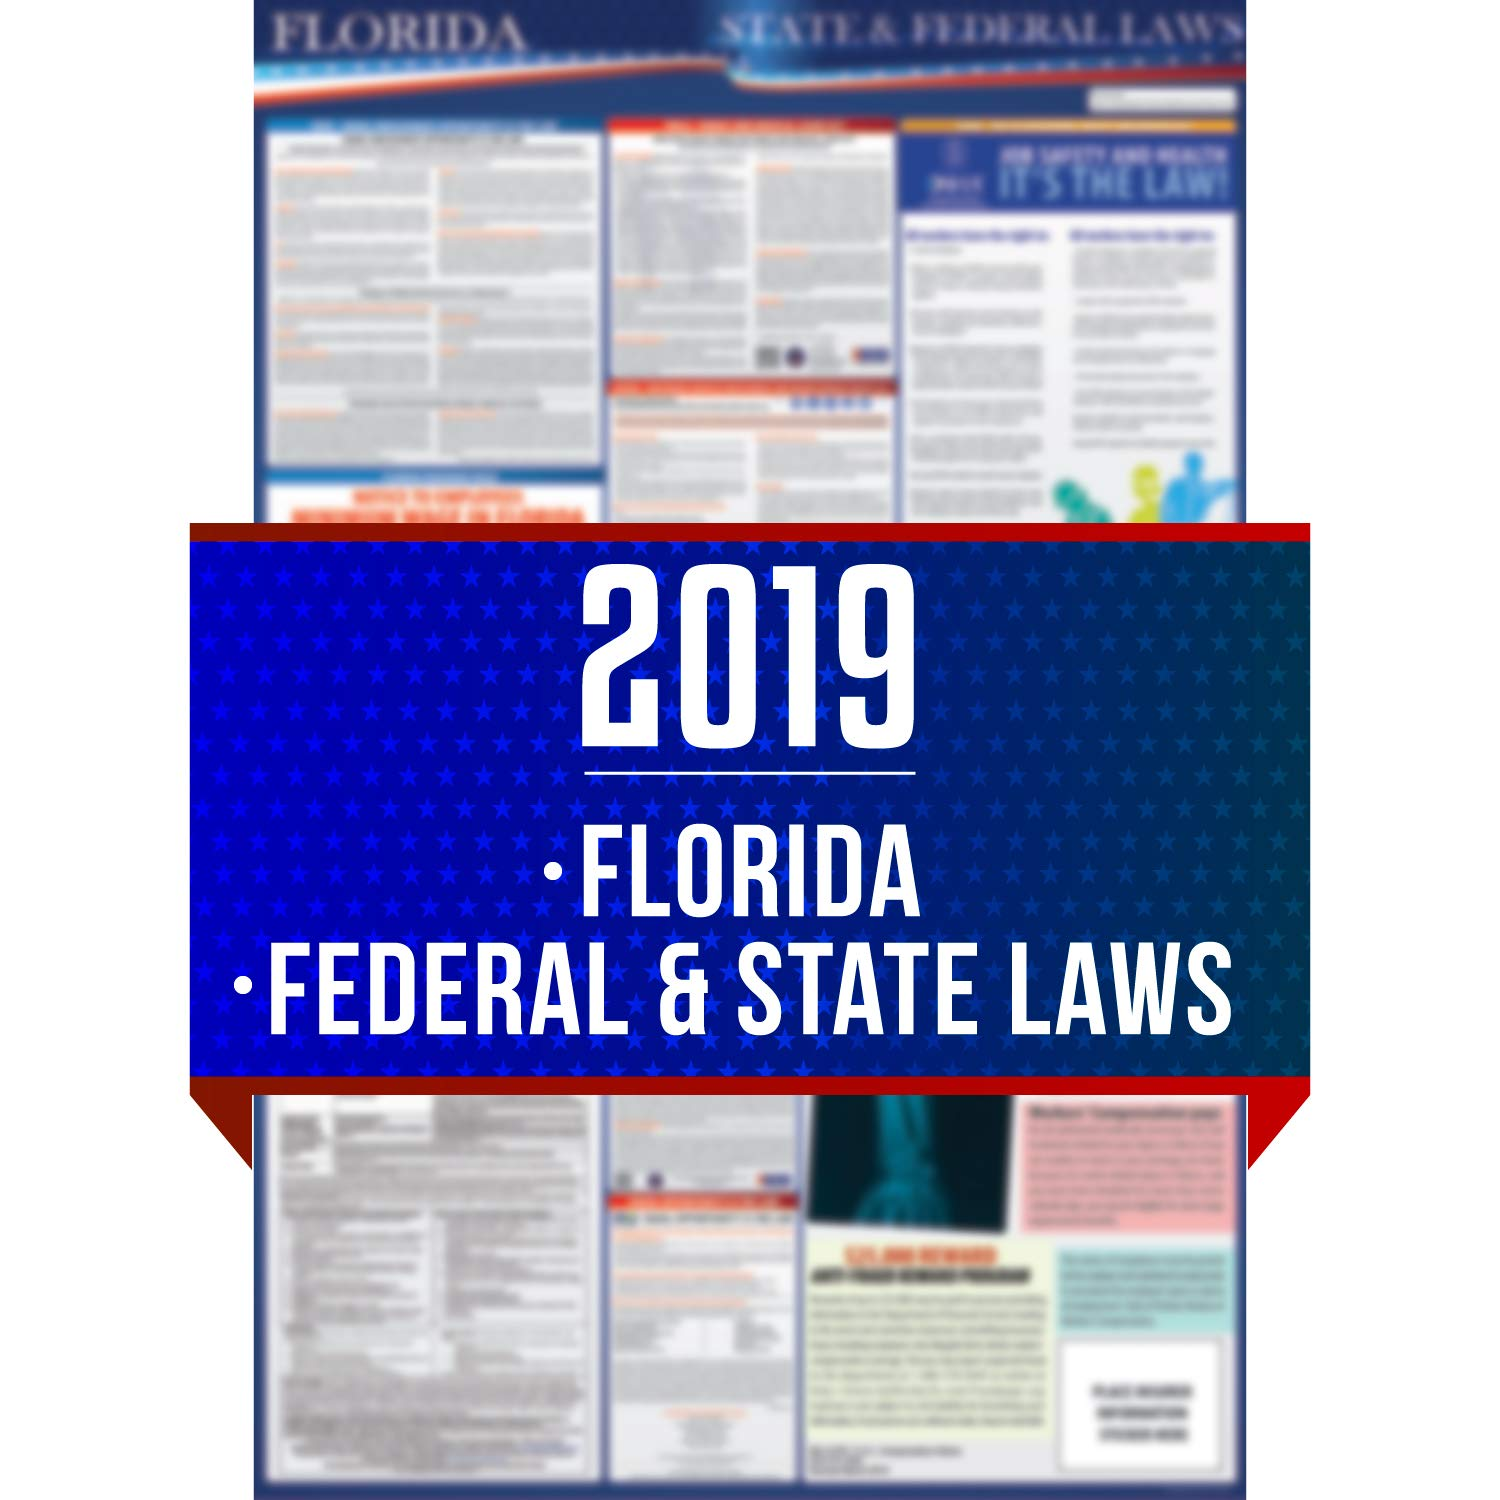 2019 Florida State and Federal Labor Laws Poster - OSHA Workplace Compliant 24'' x 36'' - All in One Required Posting - UV Coated by COMPLIANCE AUDIT CENTER (Image #1)